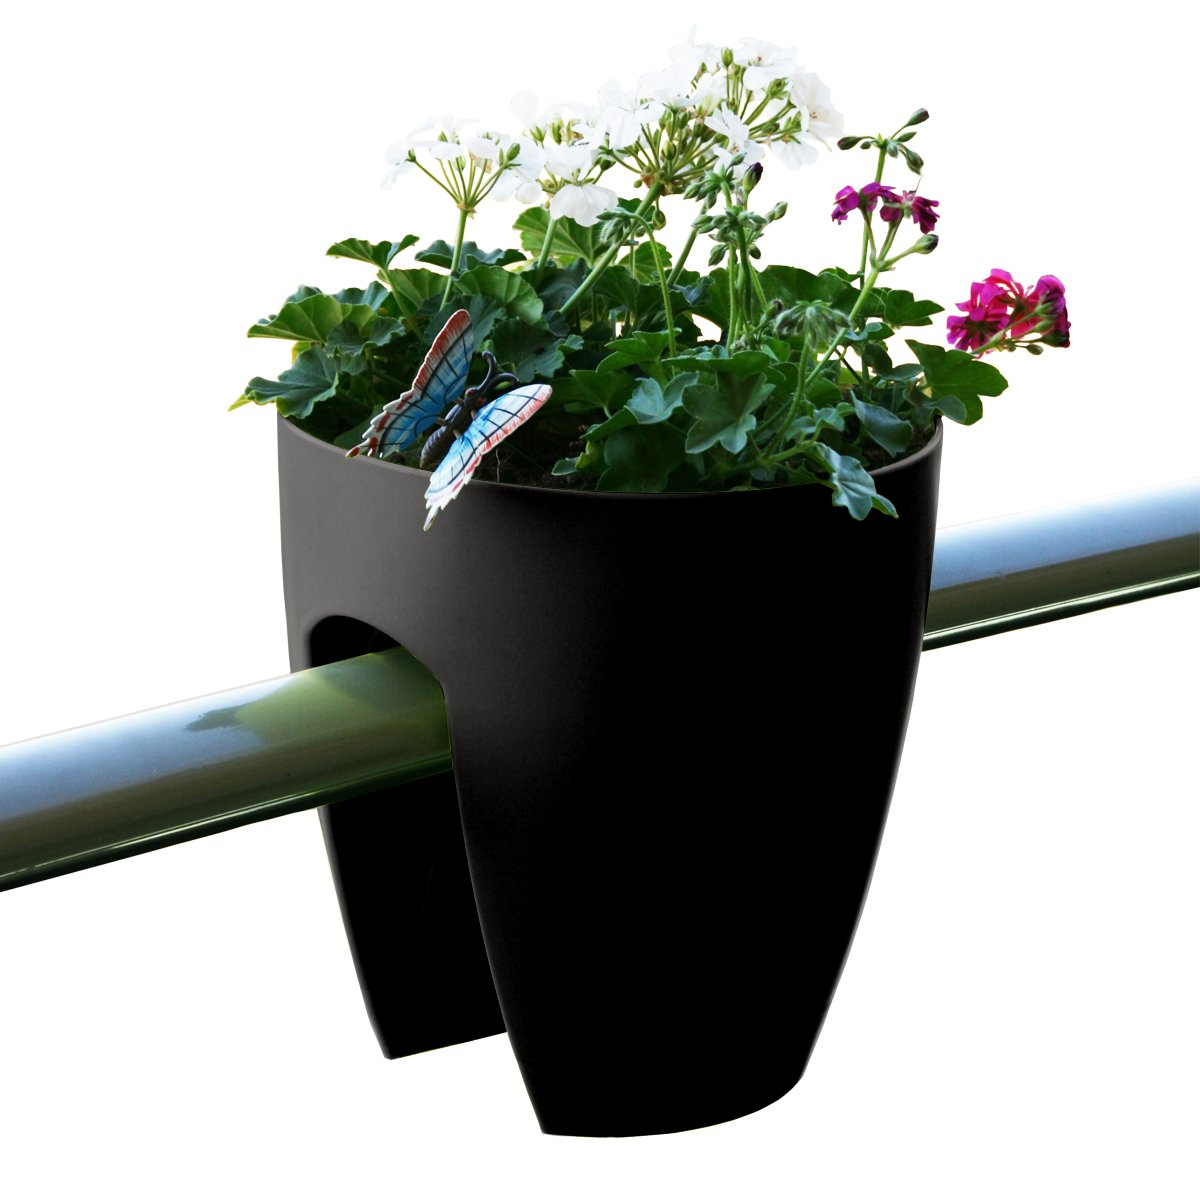 Greenbo Deck Rail Planter Box with Drainage trays, round 12-Inch, Color Black – Set of 6